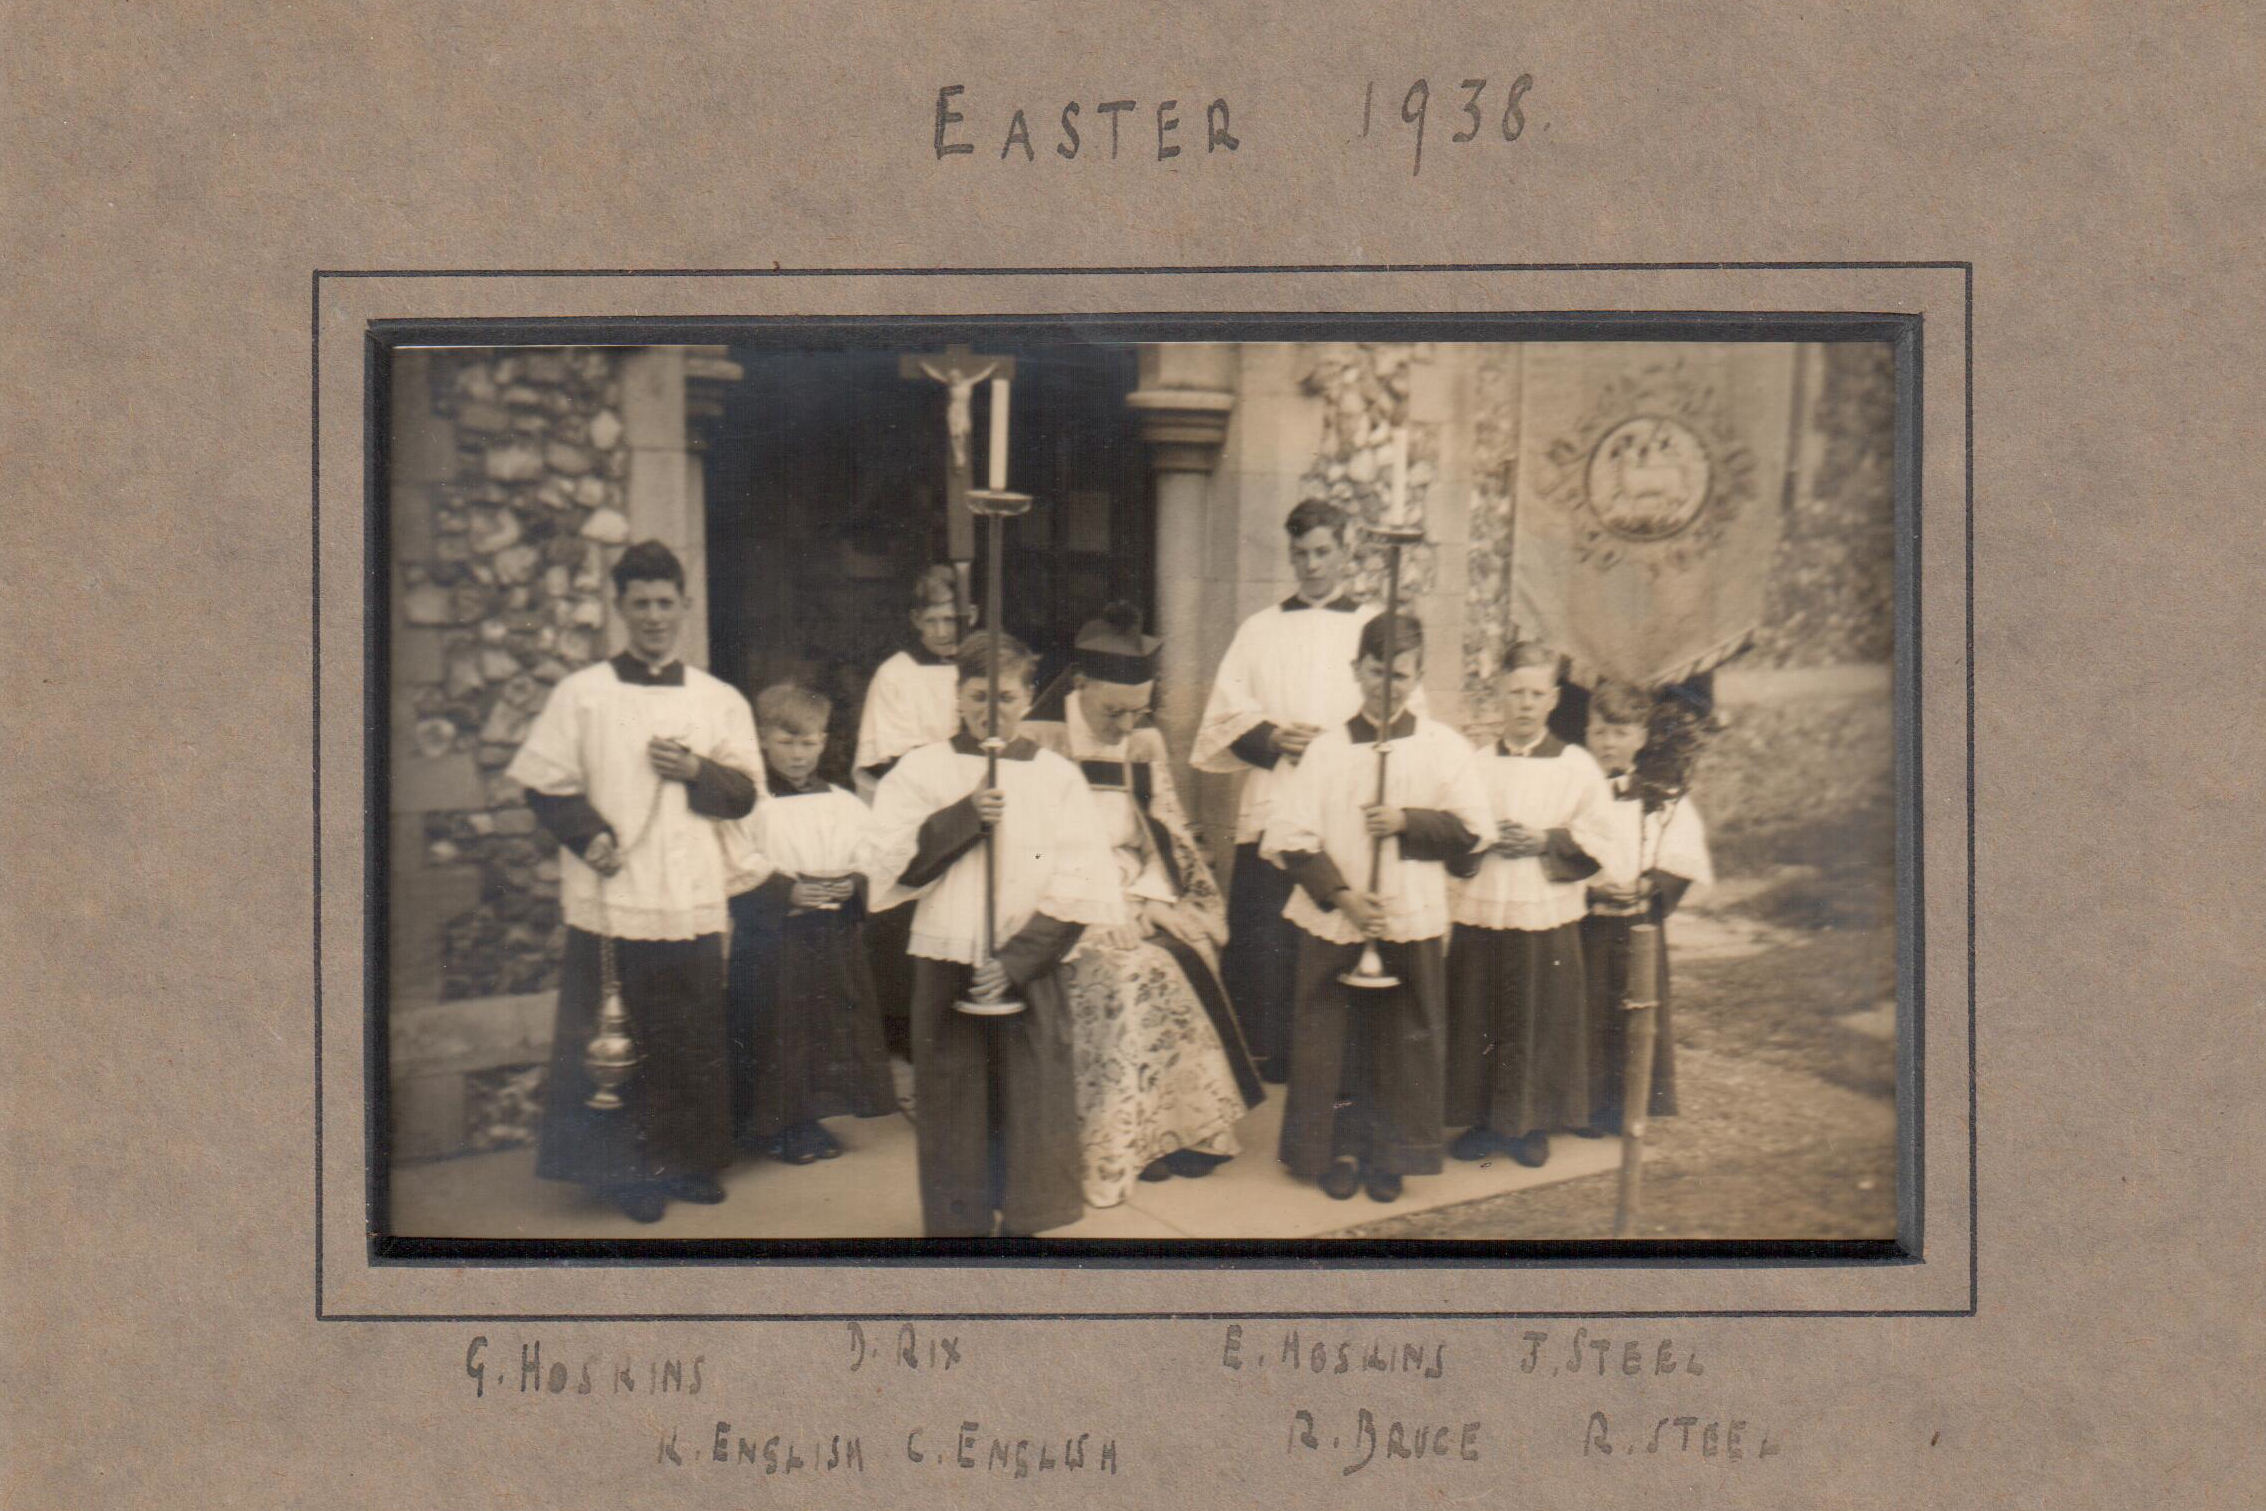 All Saints' Choir Easter 1938